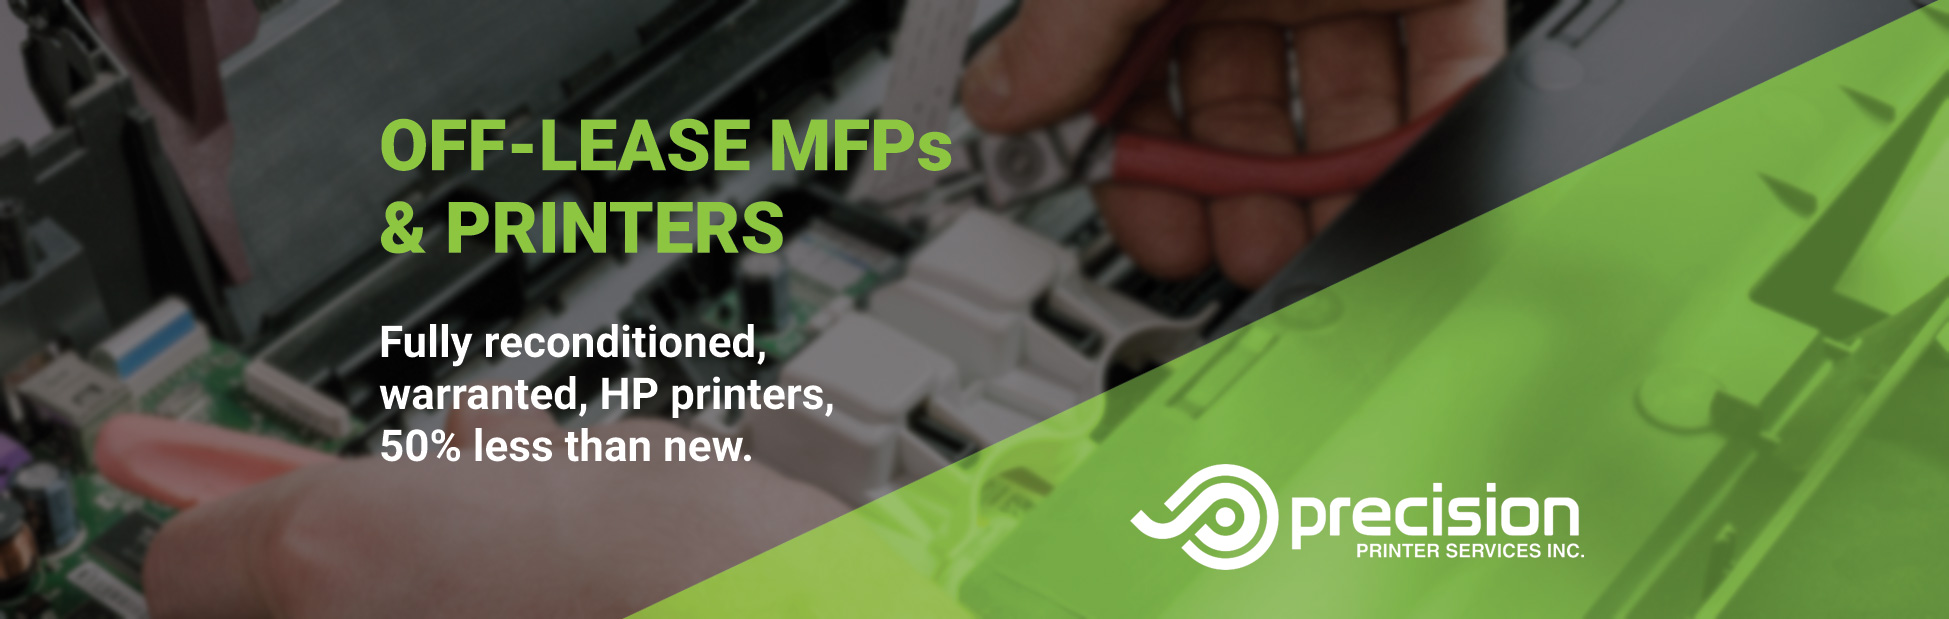 Off-Lease MFPs & Printers